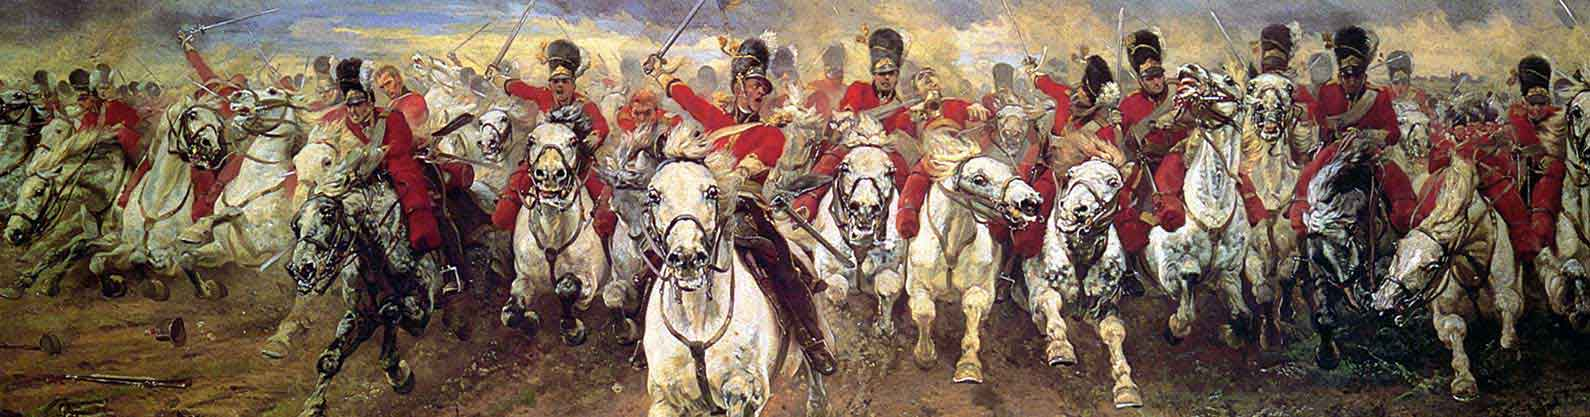 1815-Battle-of-Waterloo